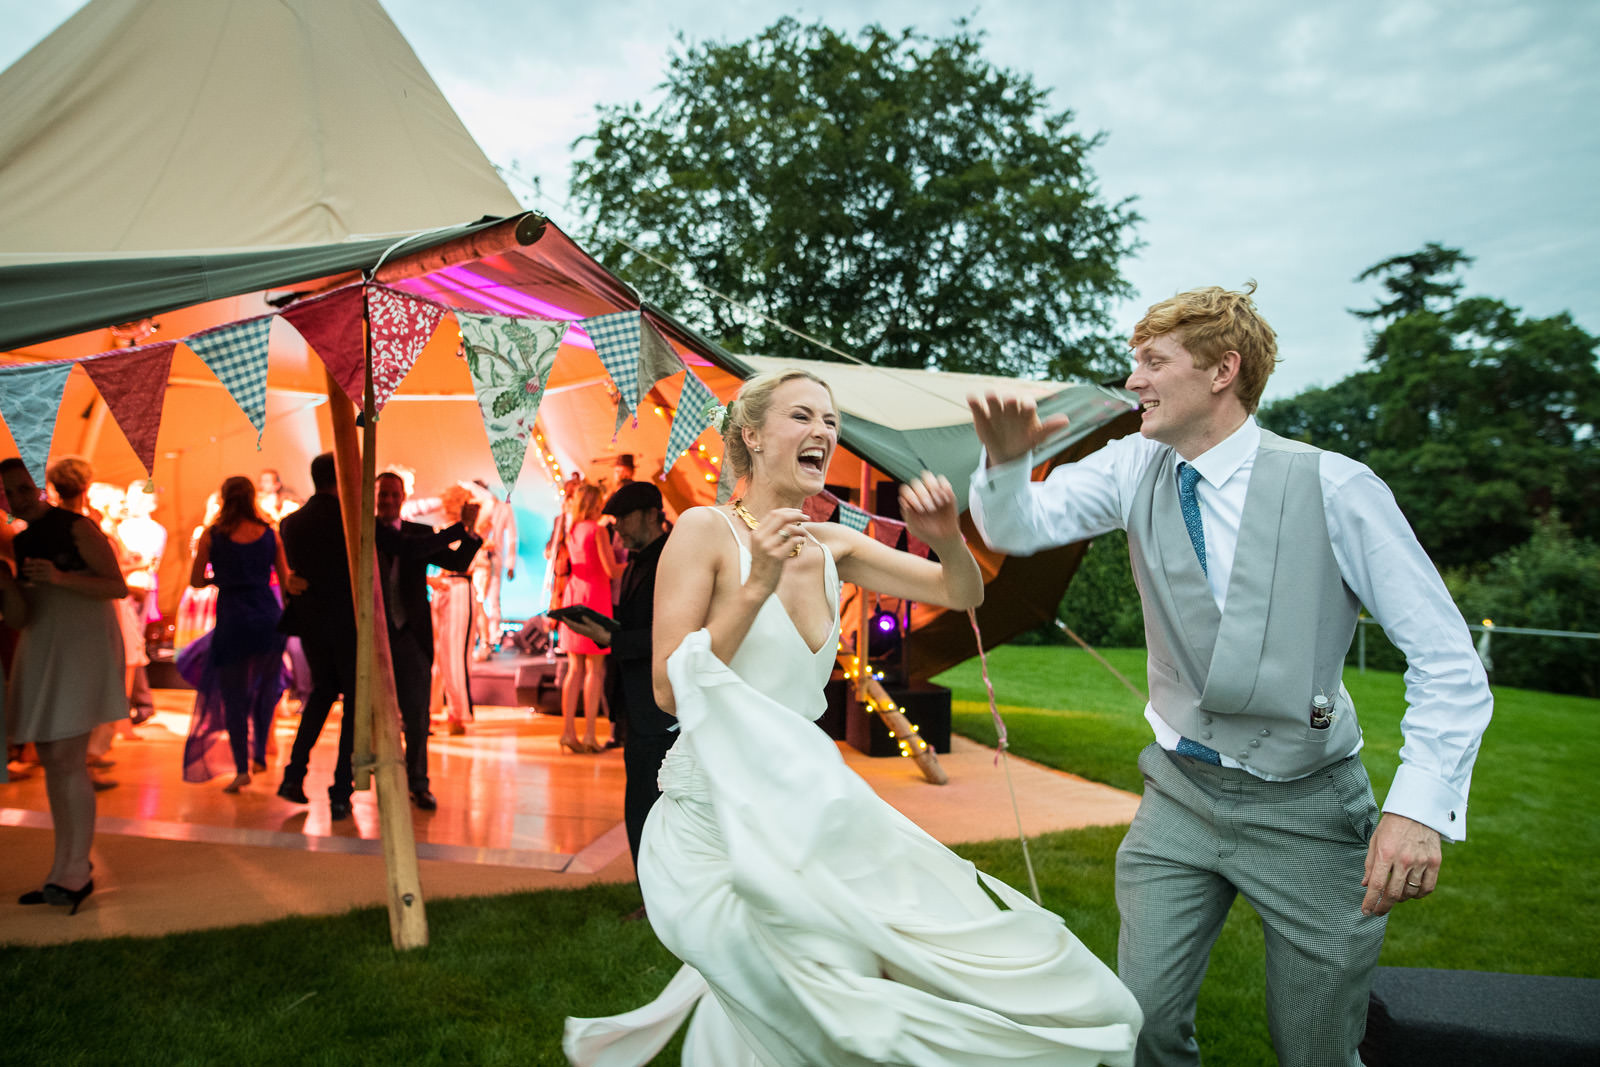 Bride and Groom dance outside their Marquee